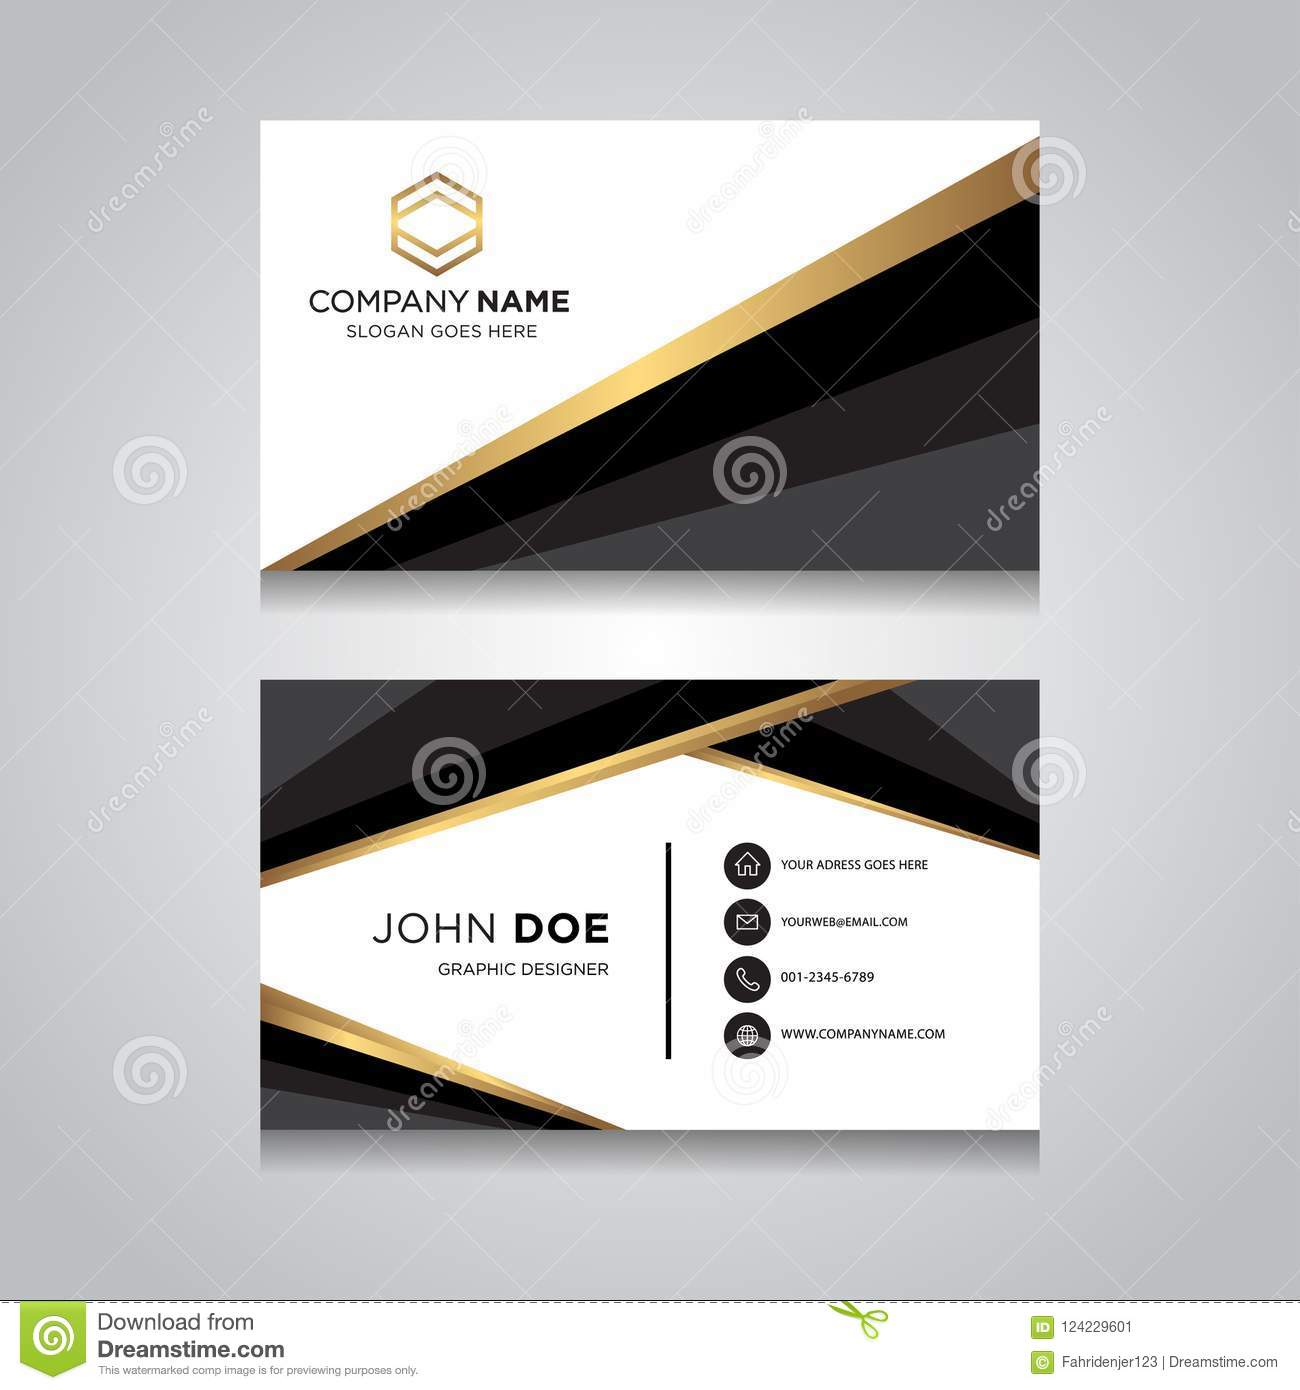 Business Card Vector Modern Design Stock Vector Illustration Of Image Fashion 124229601